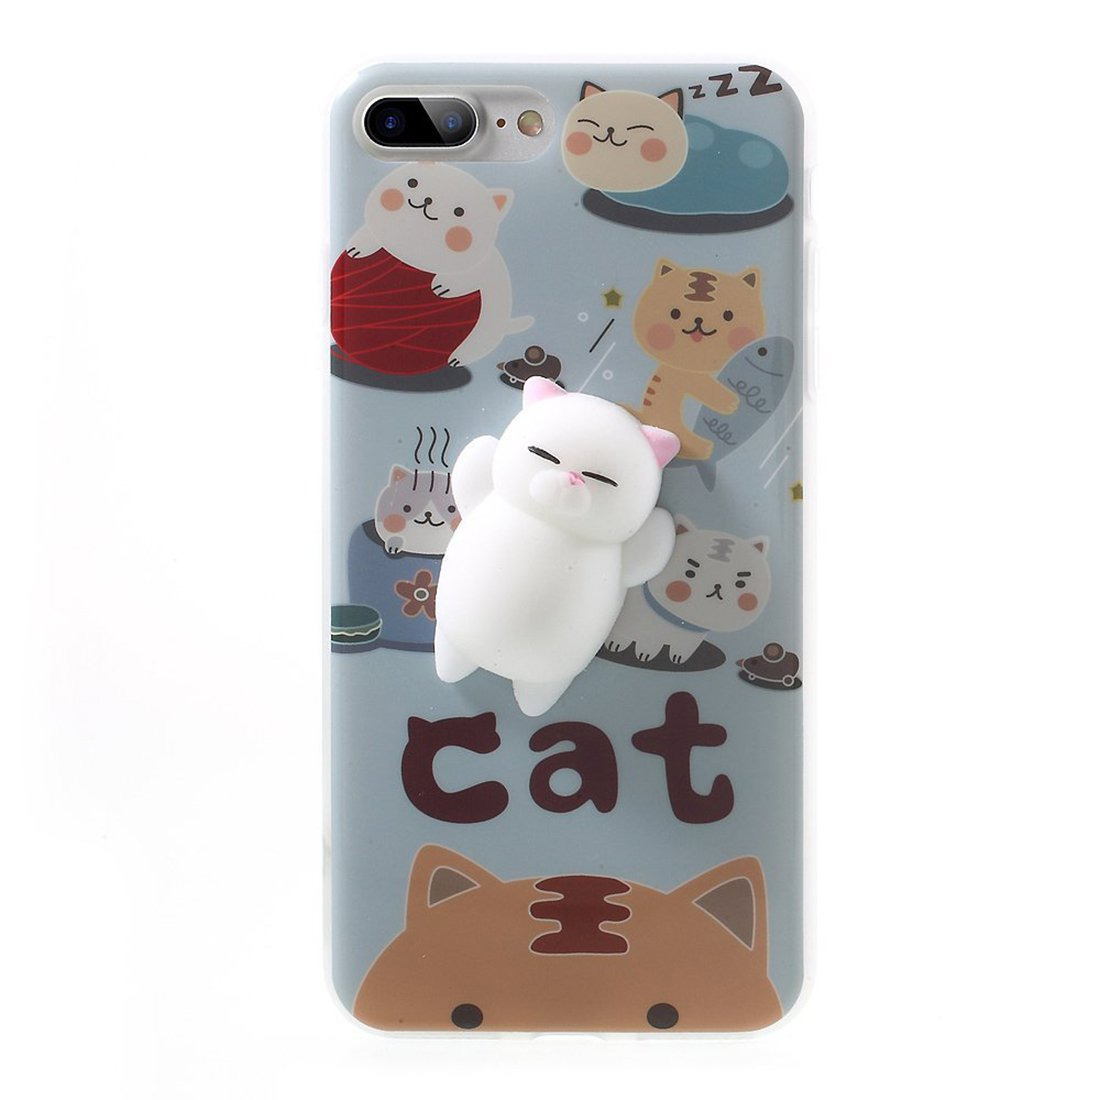 Iphone 6 squishy case - Amazon Com Squishy Cat Iphone 6s 6 Case 3d Cute Soft Silicone Poke Squishy Cat Phone Back Cover For Iphone 6s Iphone 6 Cell Phones Accessories